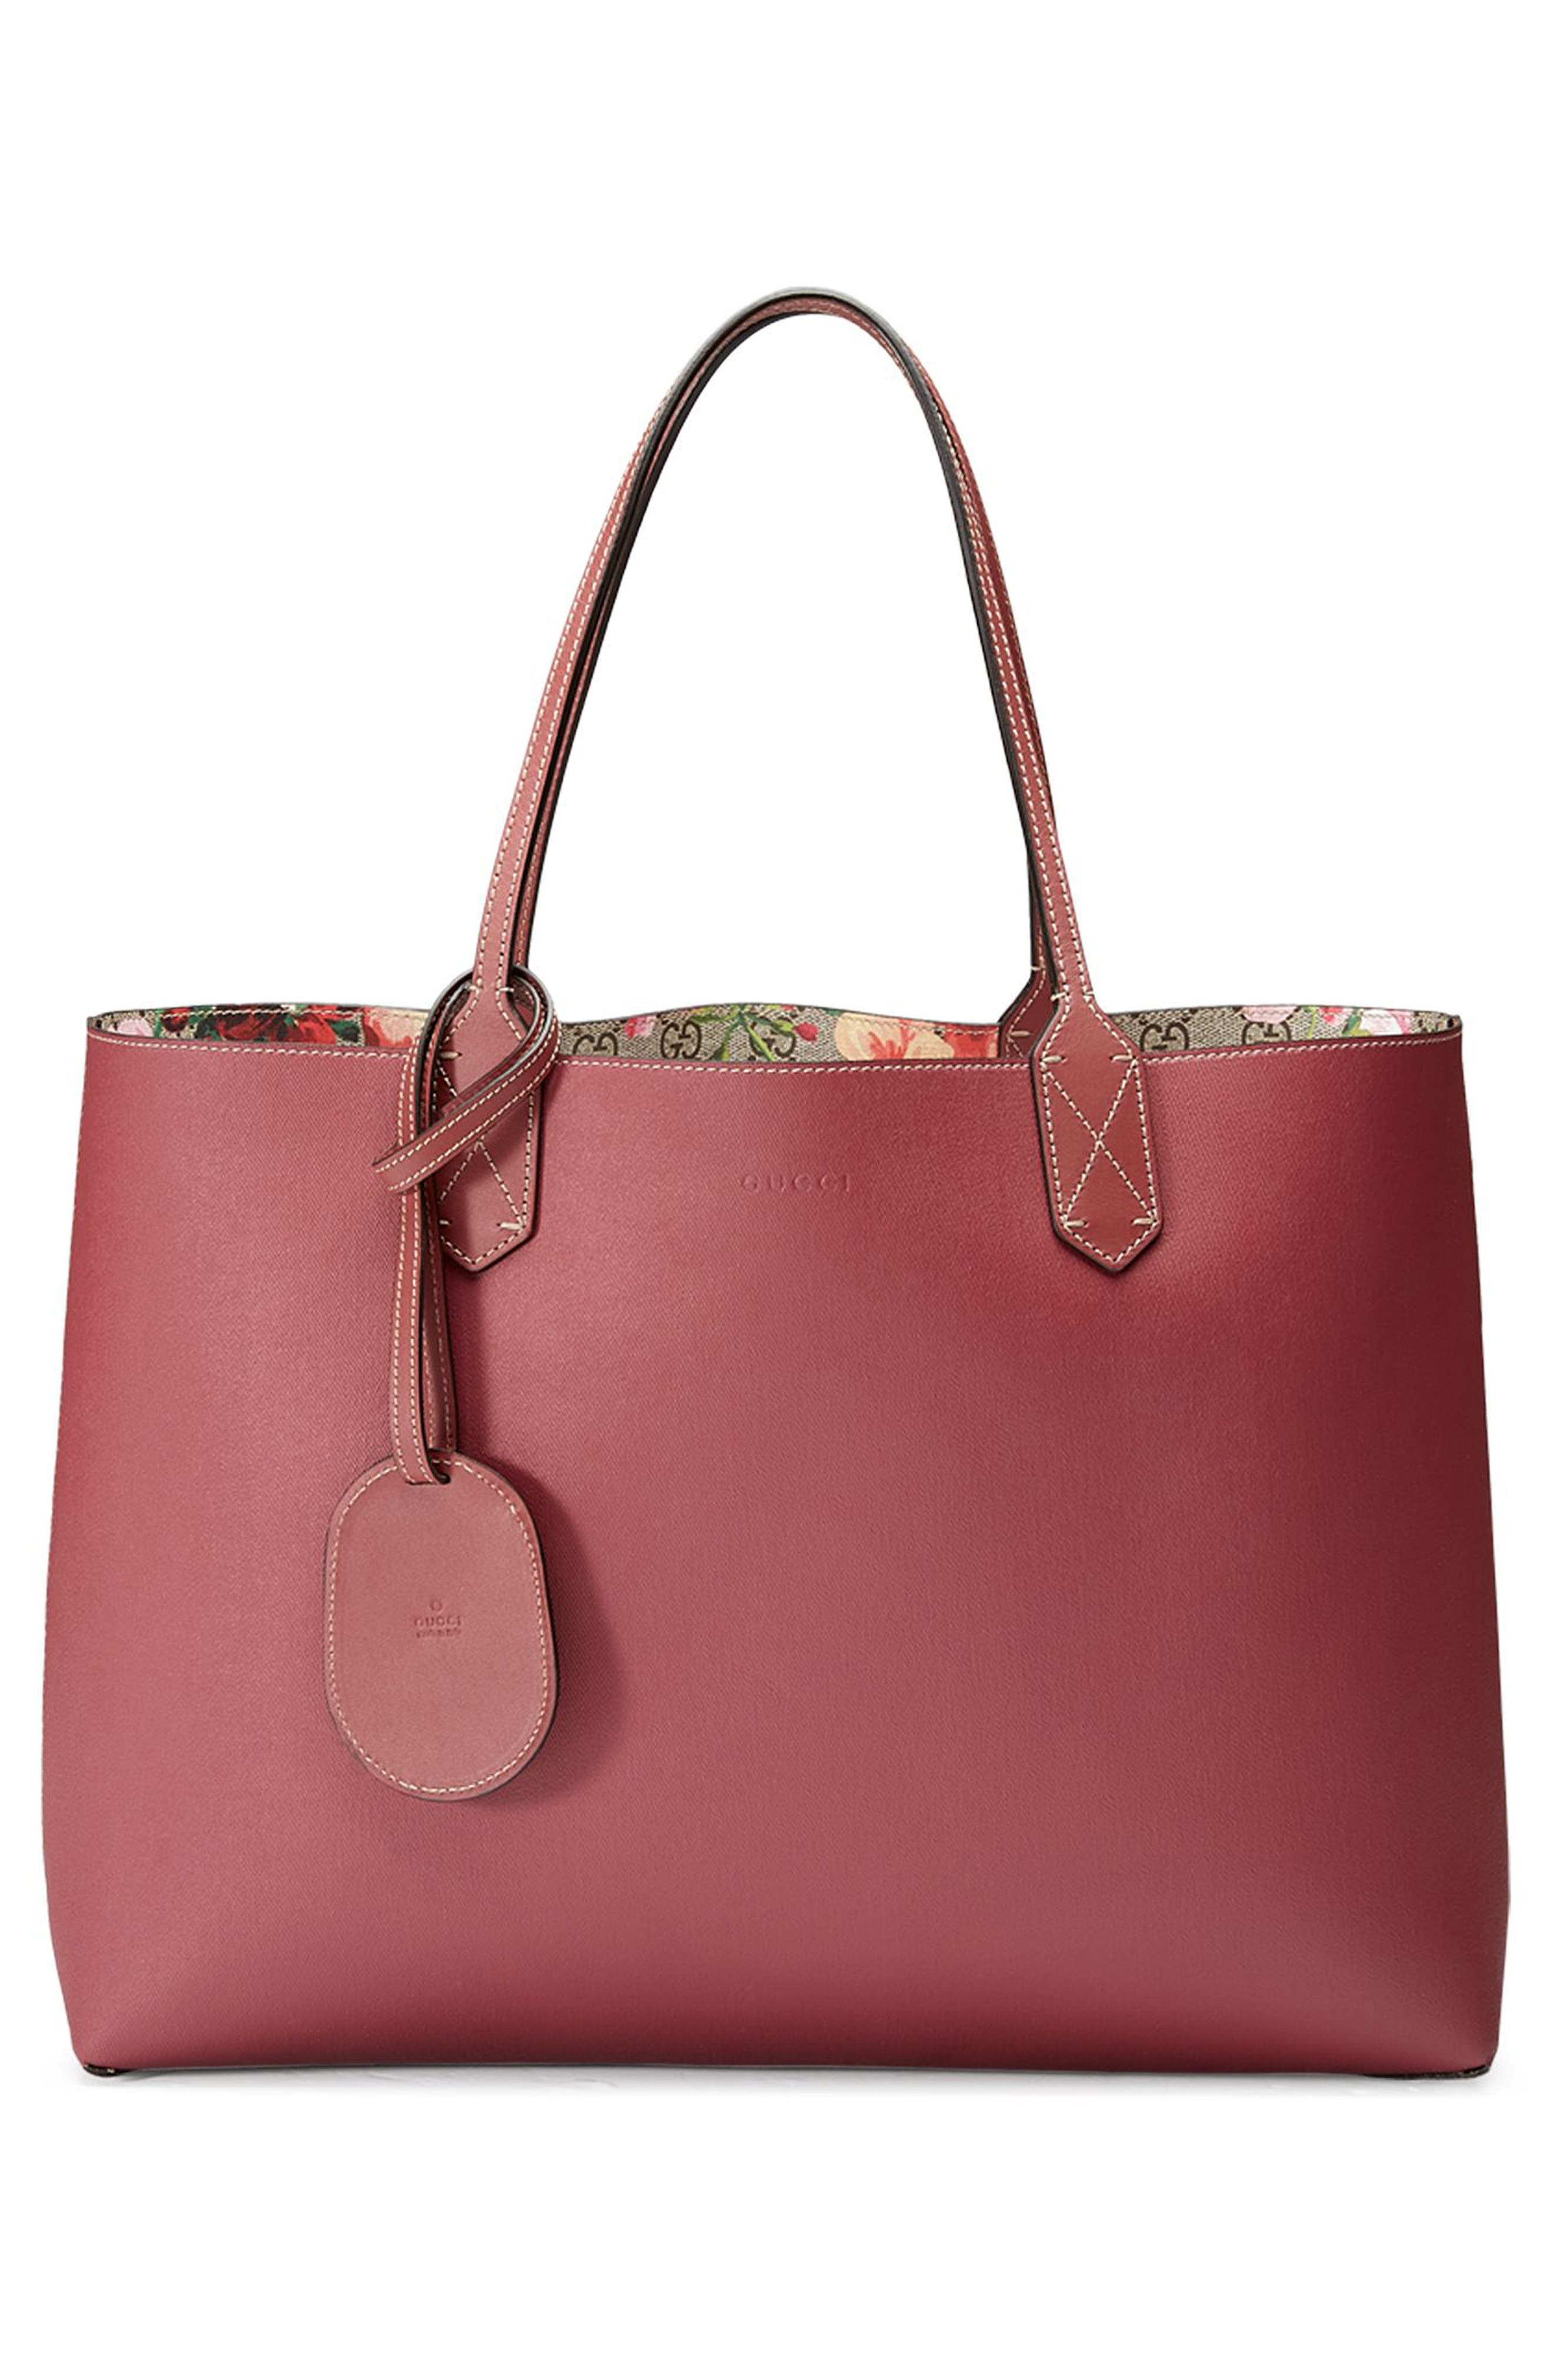 GUCCI,                             Medium GG Blooms Reversible Canvas & Leather Tote,                             Alternate thumbnail 2, color,                             291